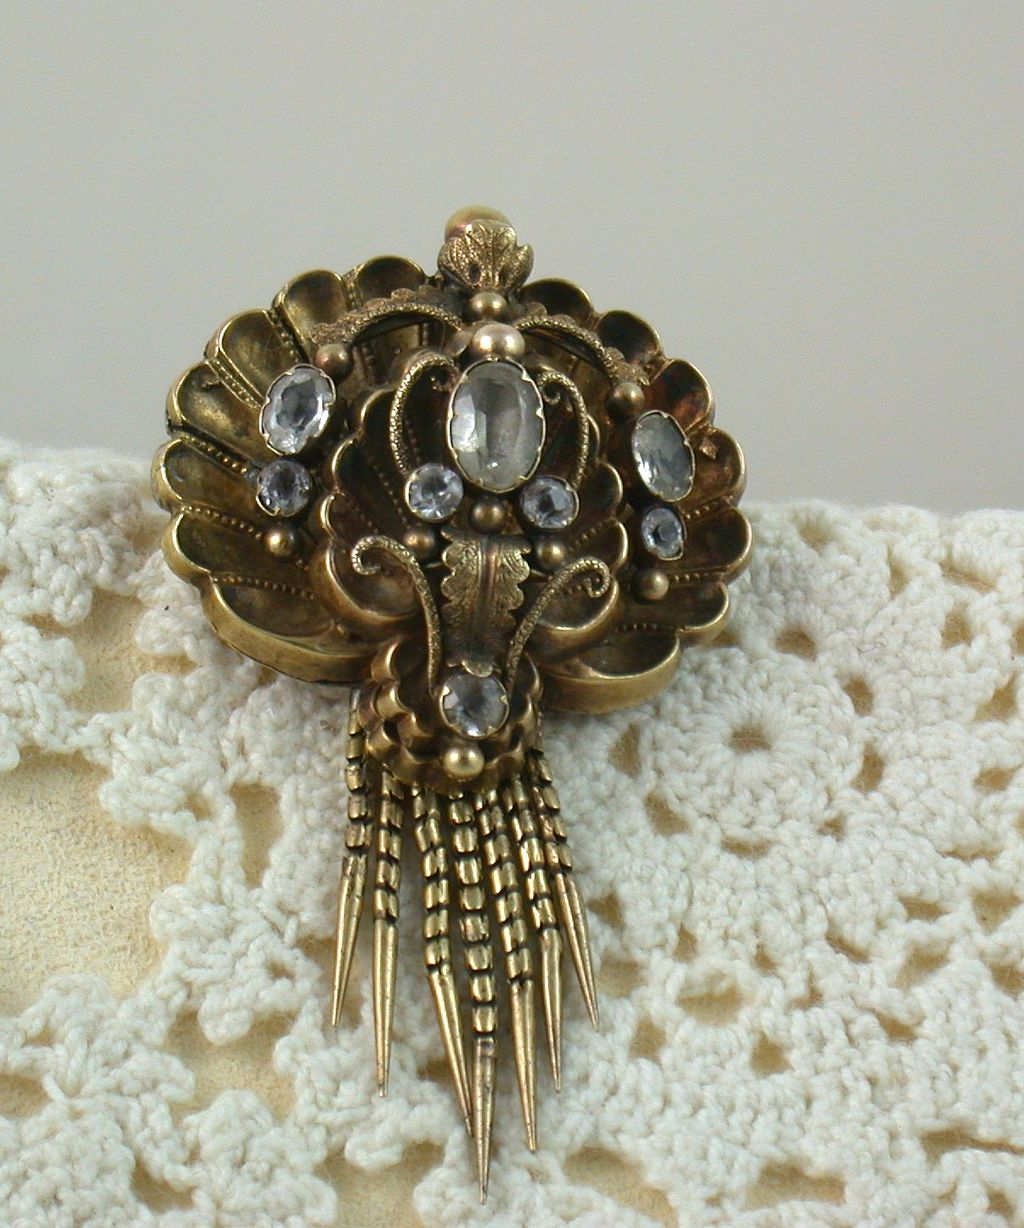 14K Early Paste Brooch/Pendant